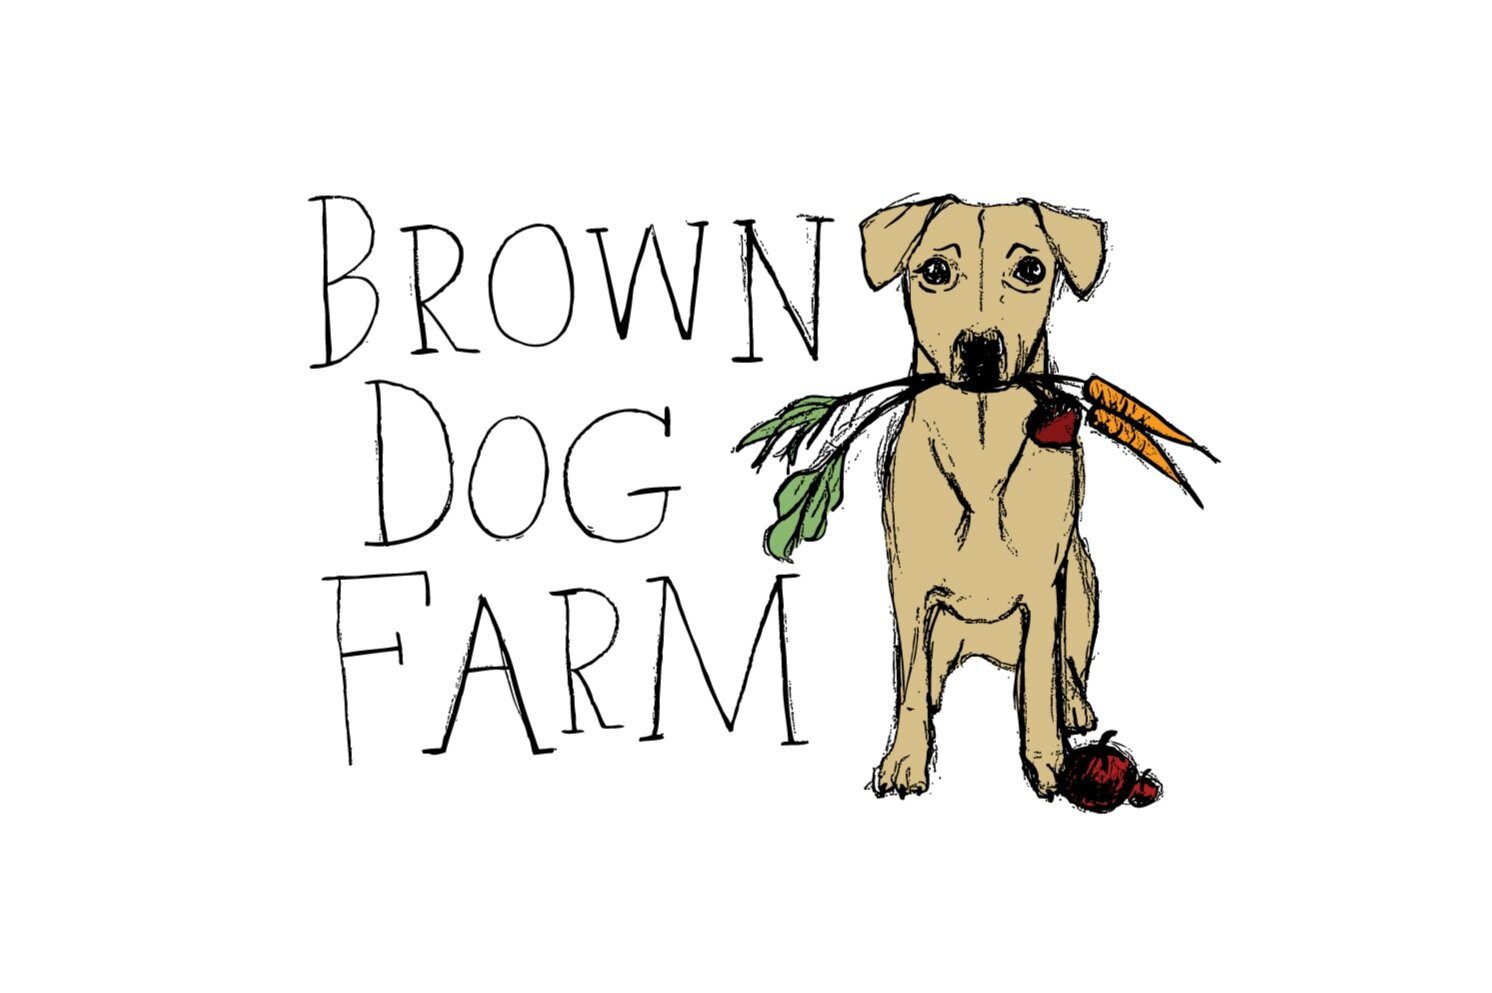 Brown Dog Farm